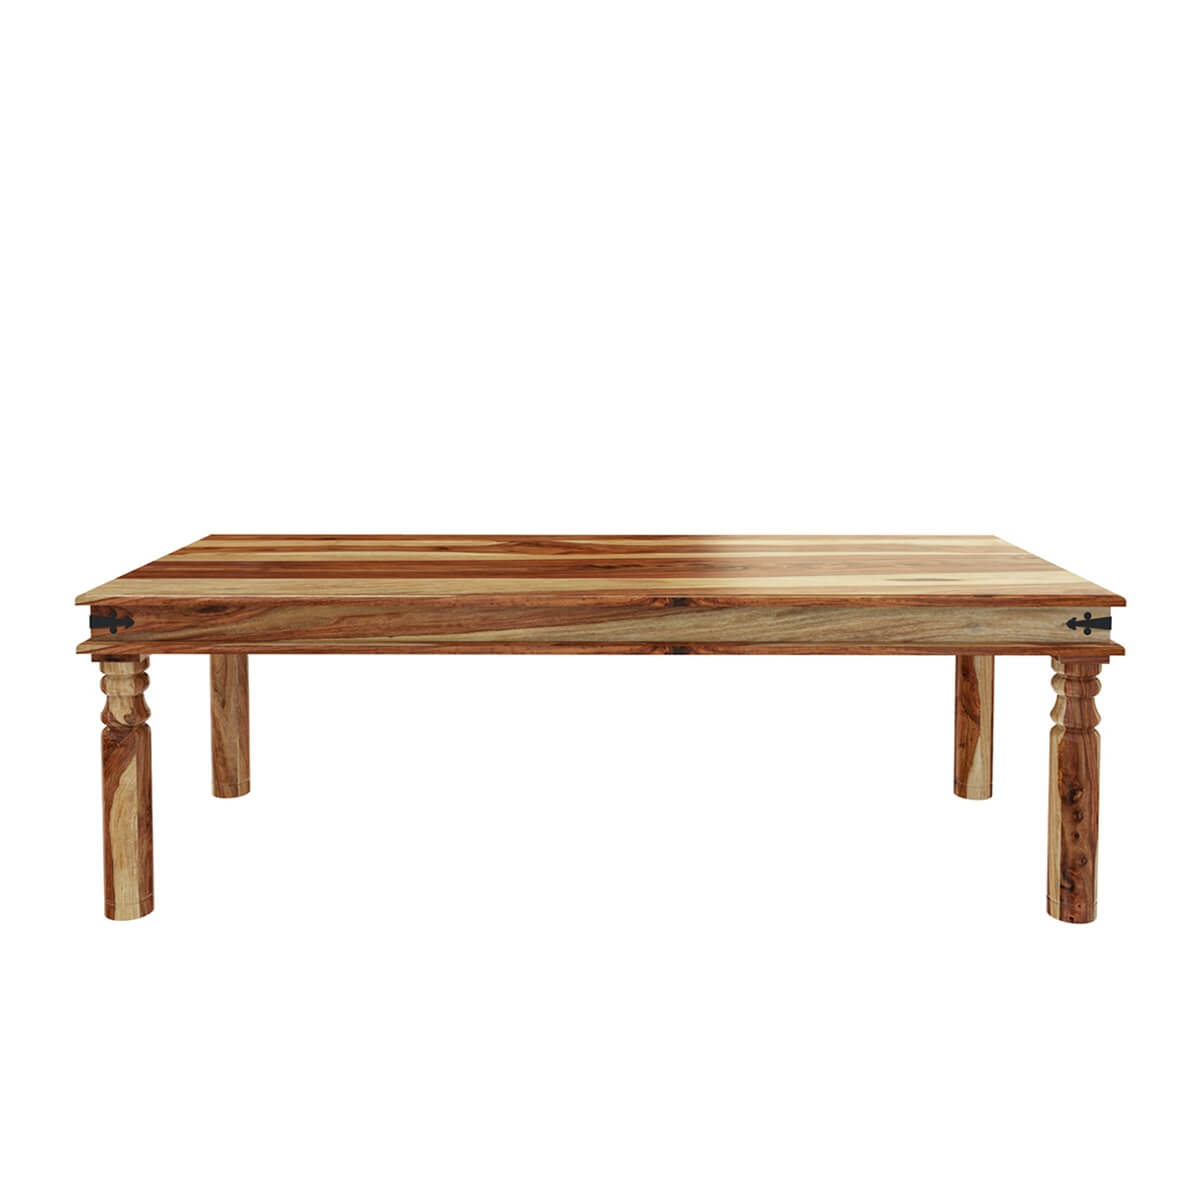 Dallas ranch large solid wood rustic dining table for Solid wood dining table